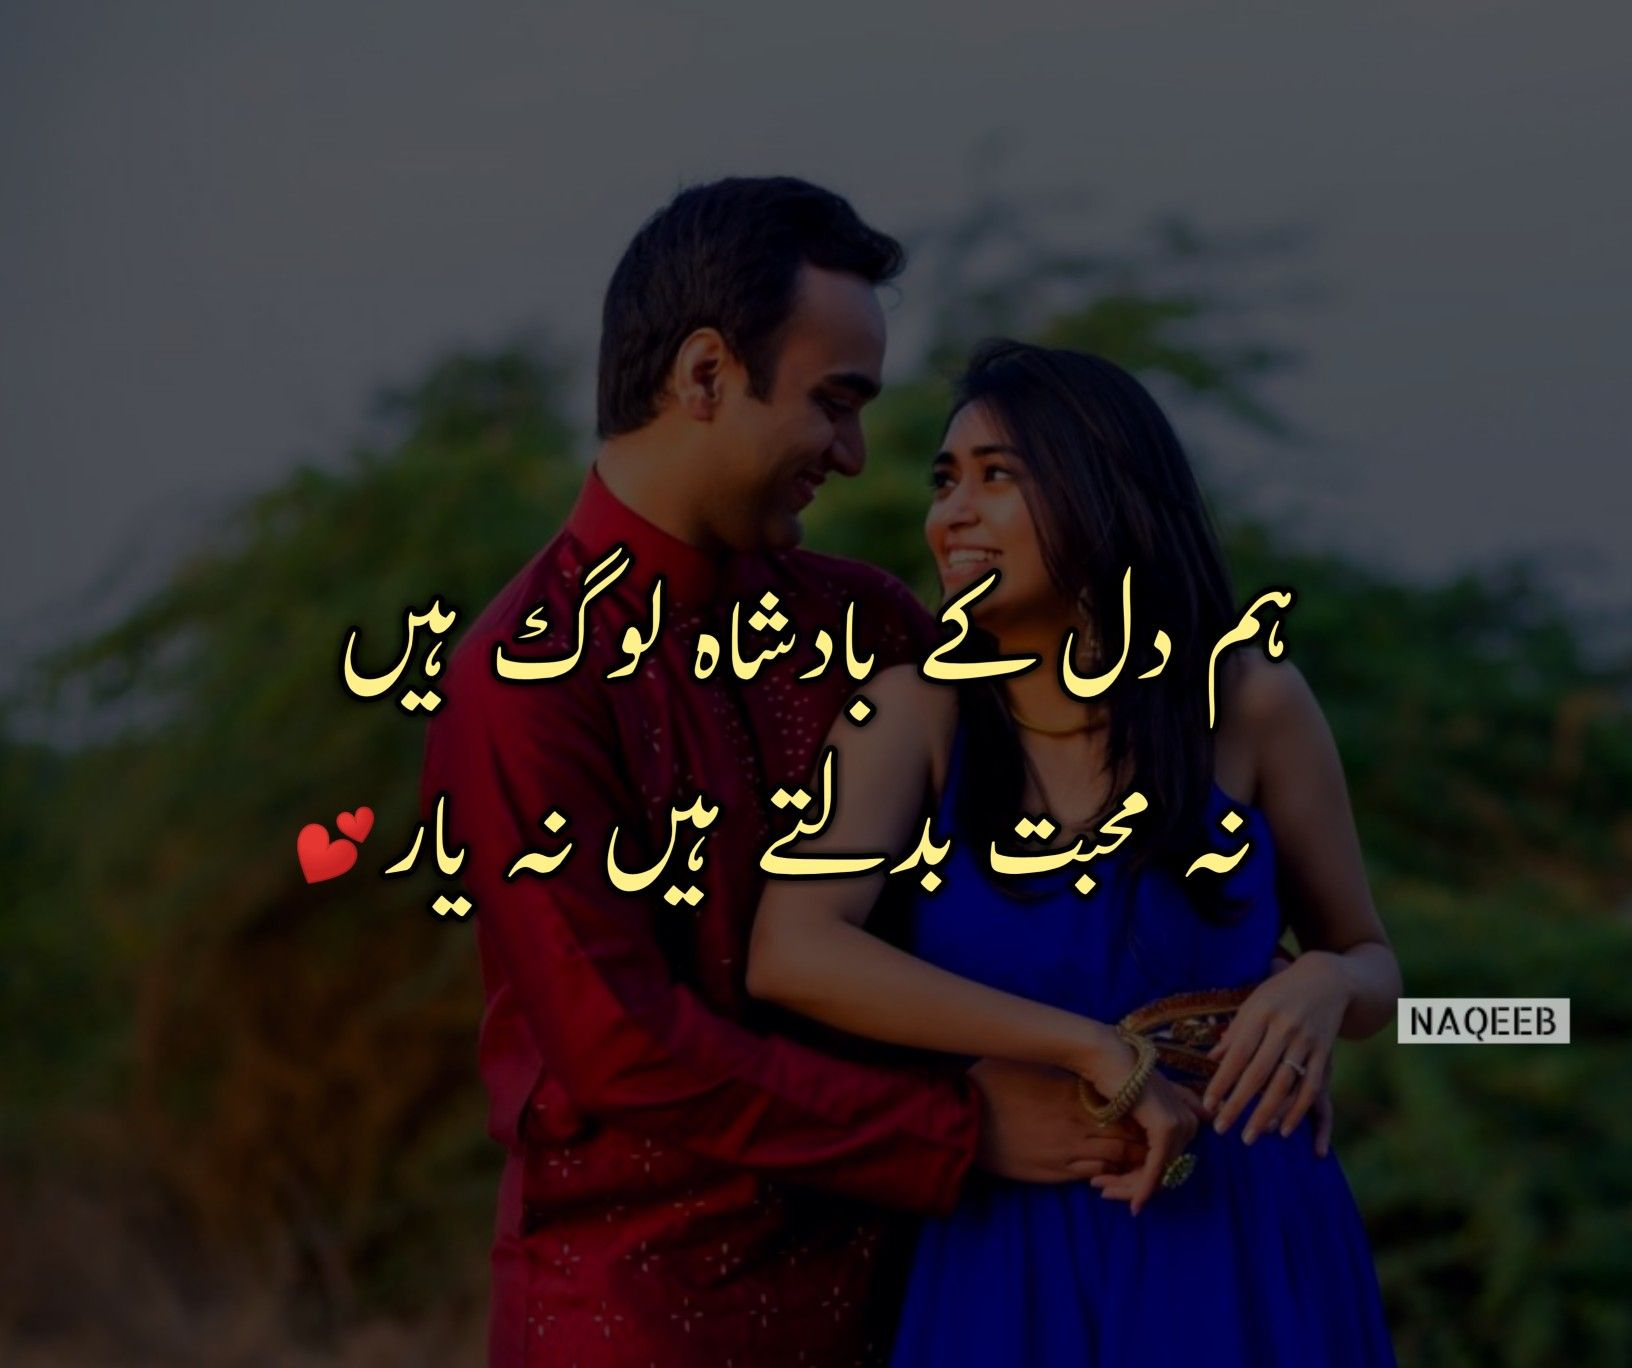 latest love poetry, urdu love poetry most romantic, 2 line